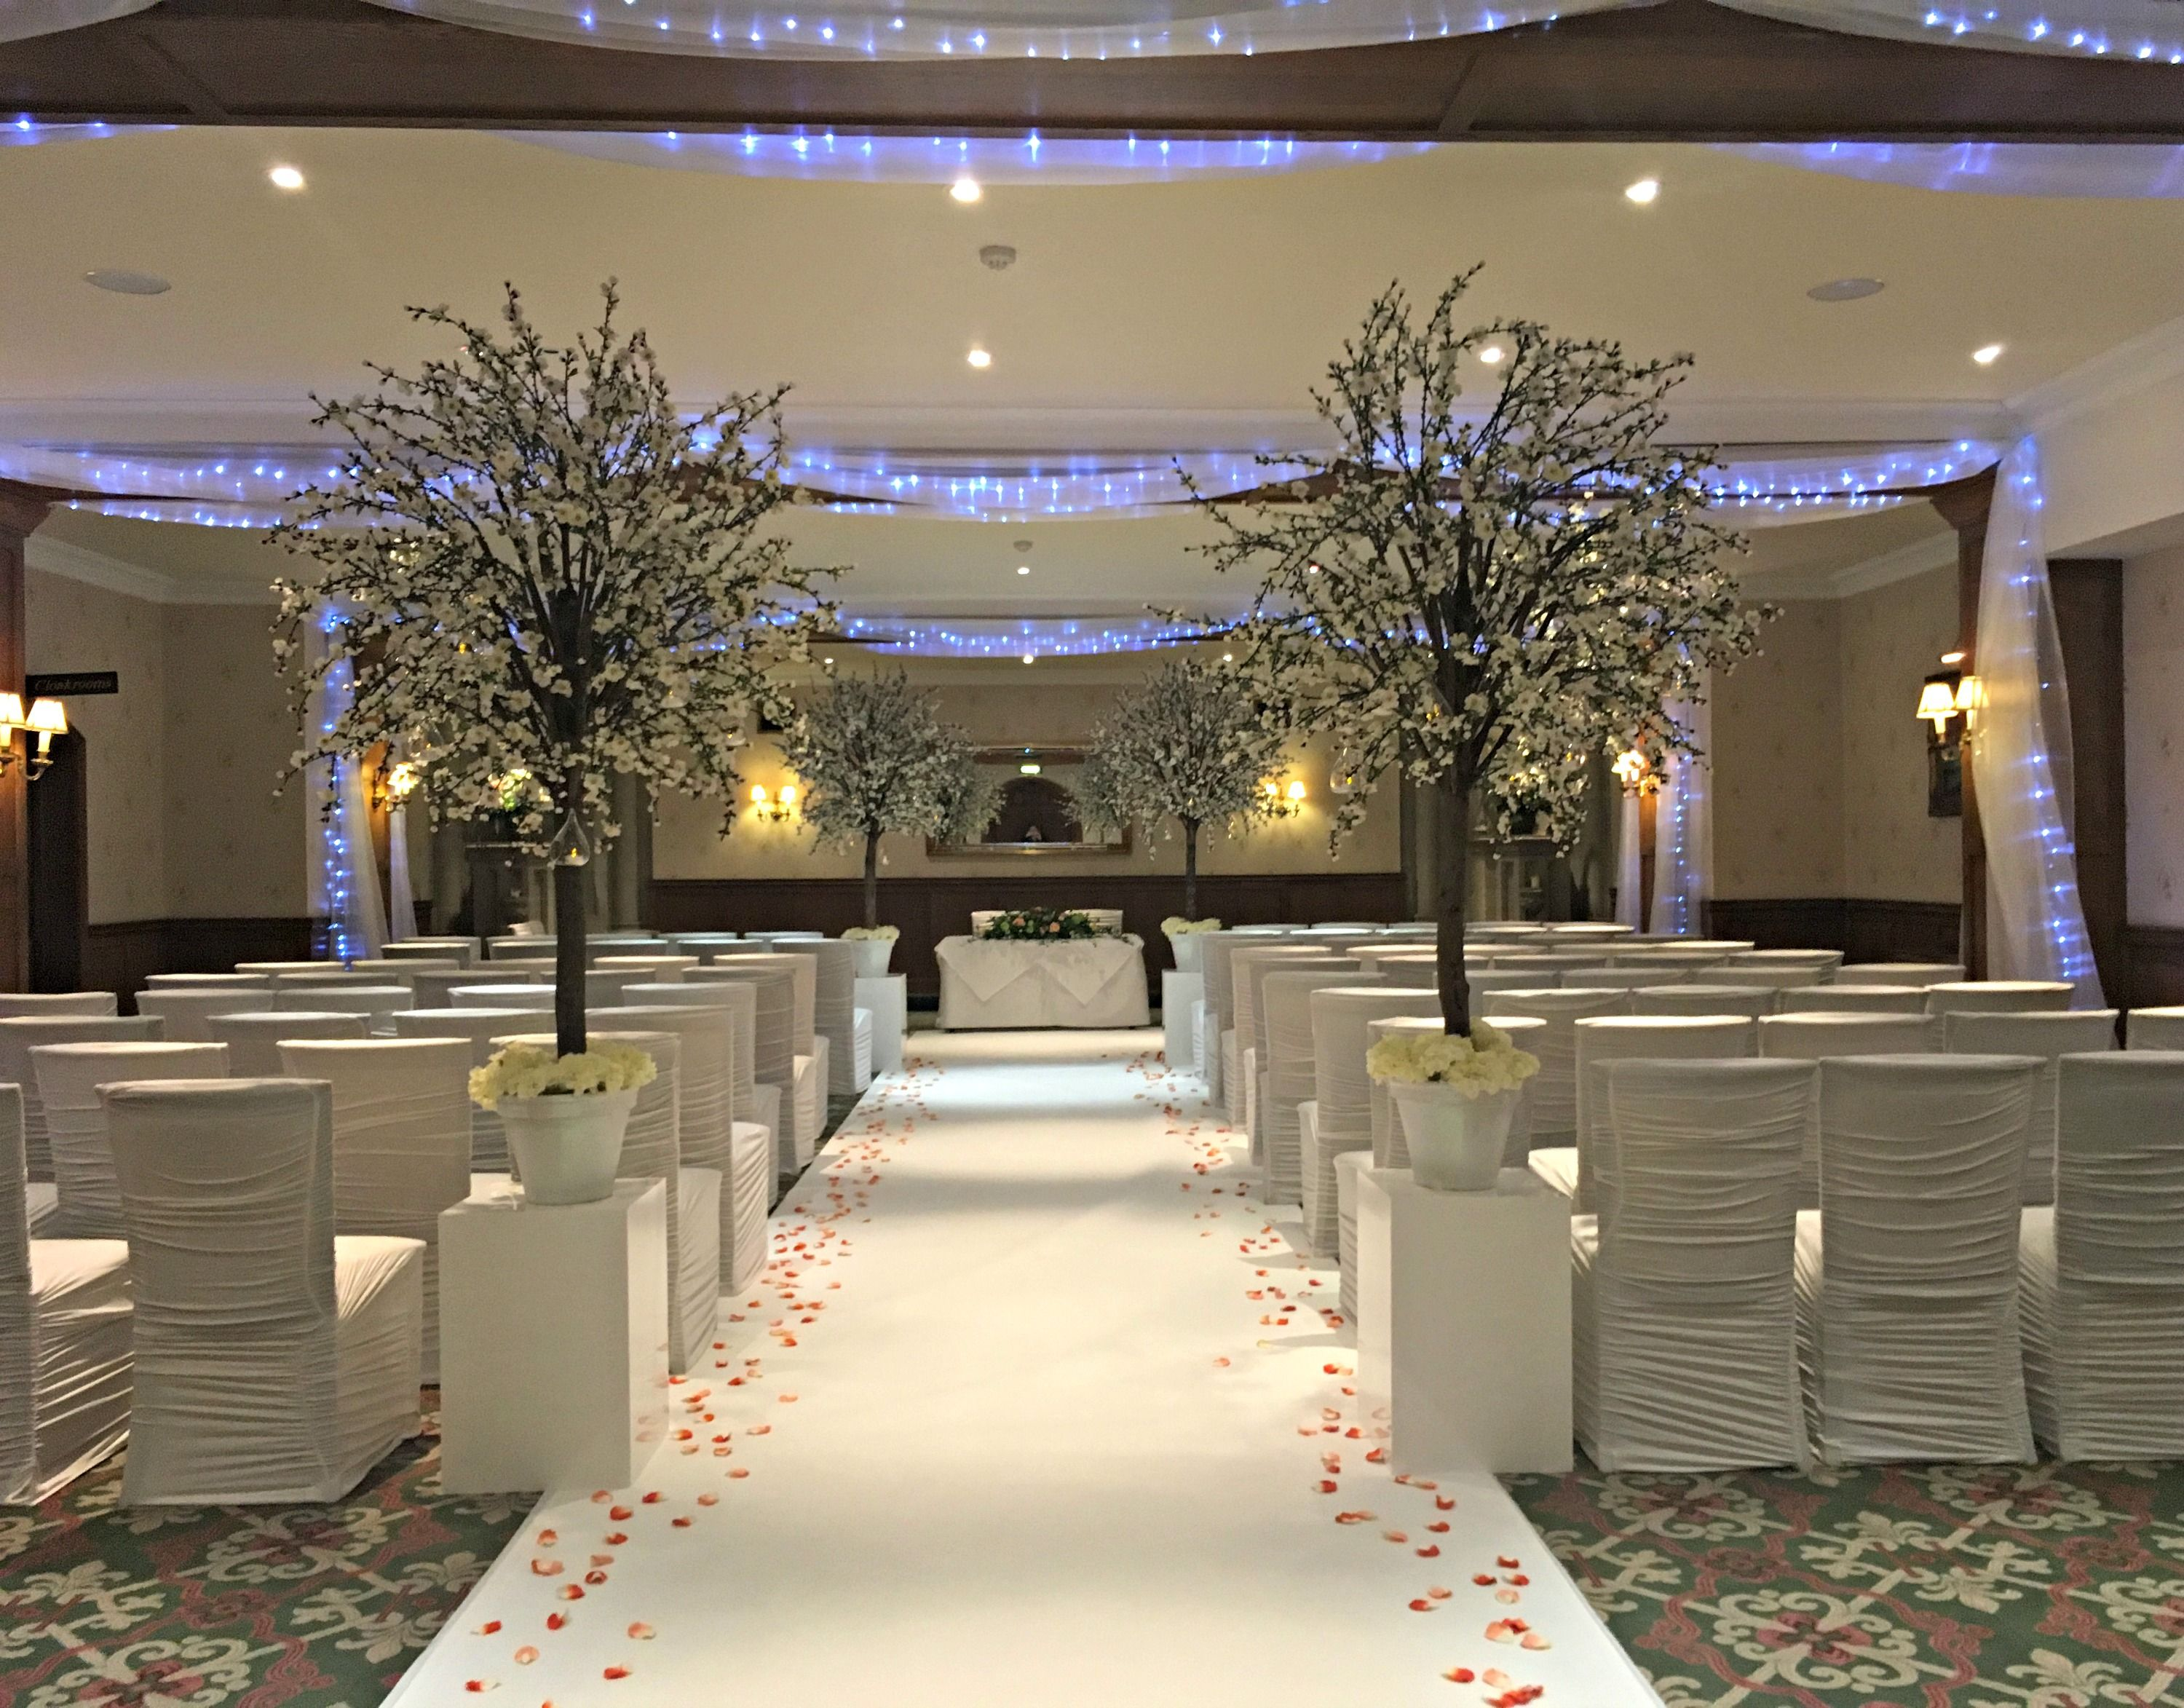 Columns ivory fabric uplighting wedding ceremony downtown double tree - Wedding Ceremony Set Up With Blossom Trees White Chair Covers White Carpet And